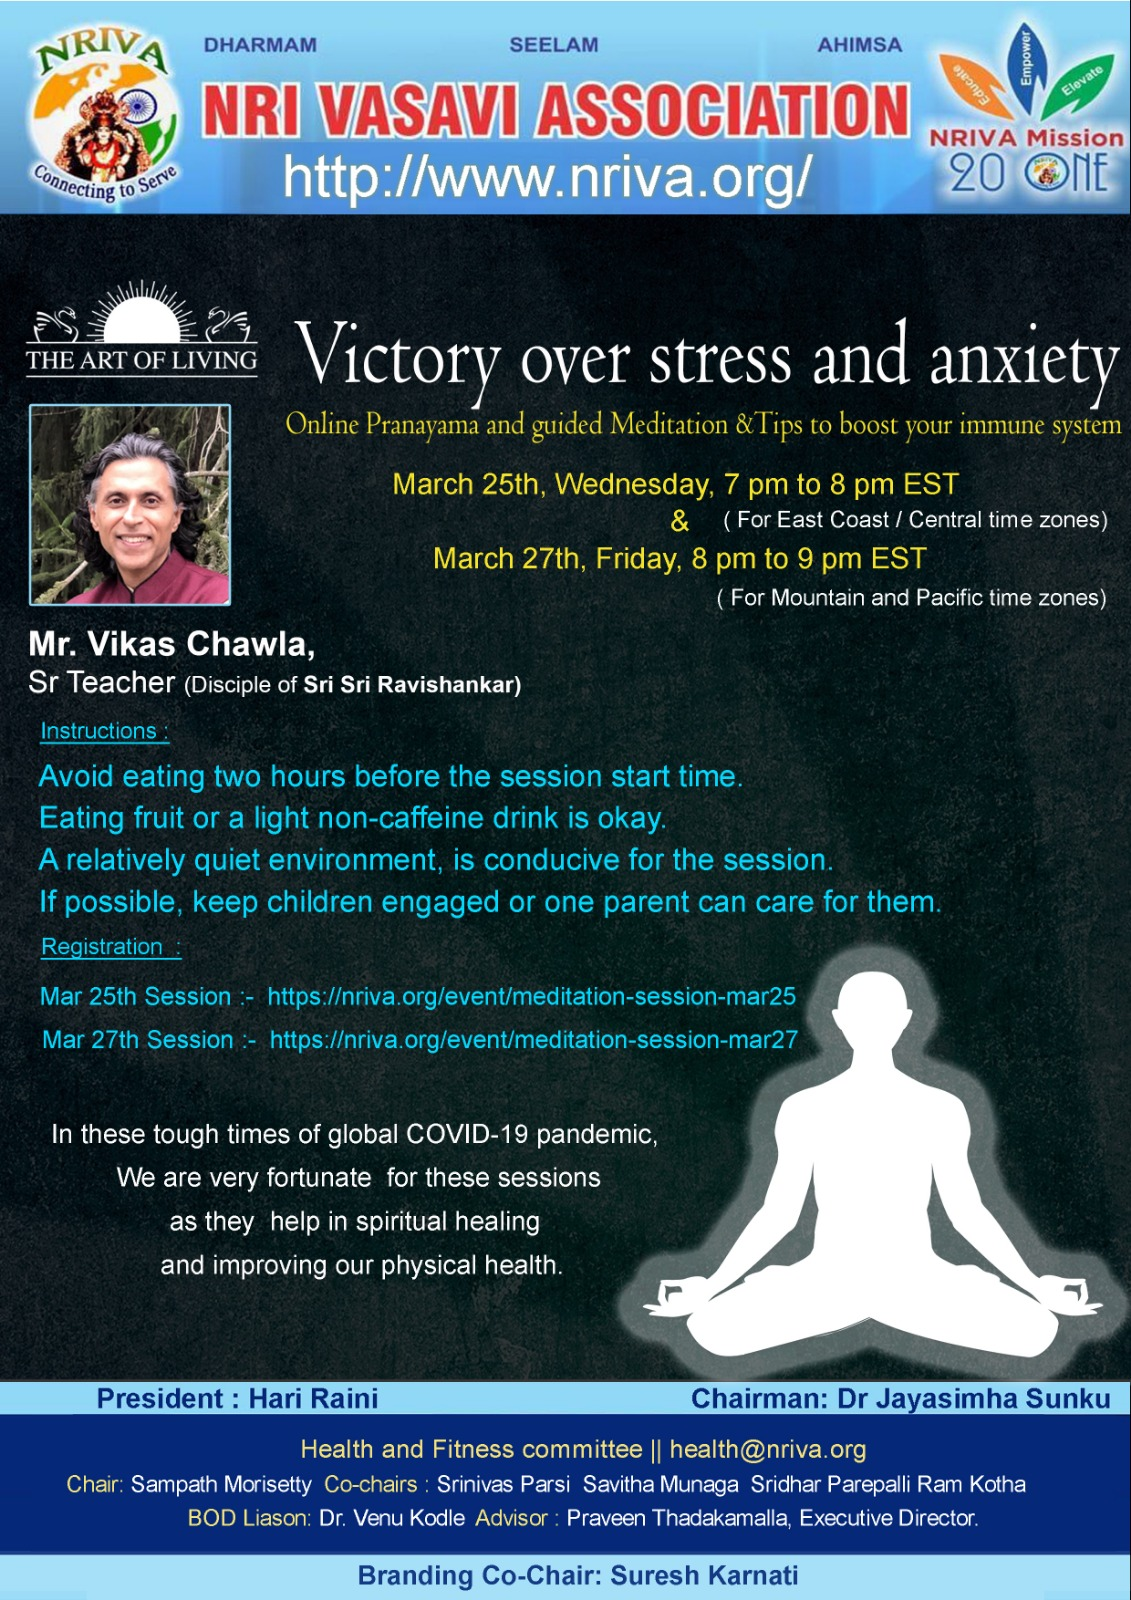 Pranayama and Guided Meditation Sessions